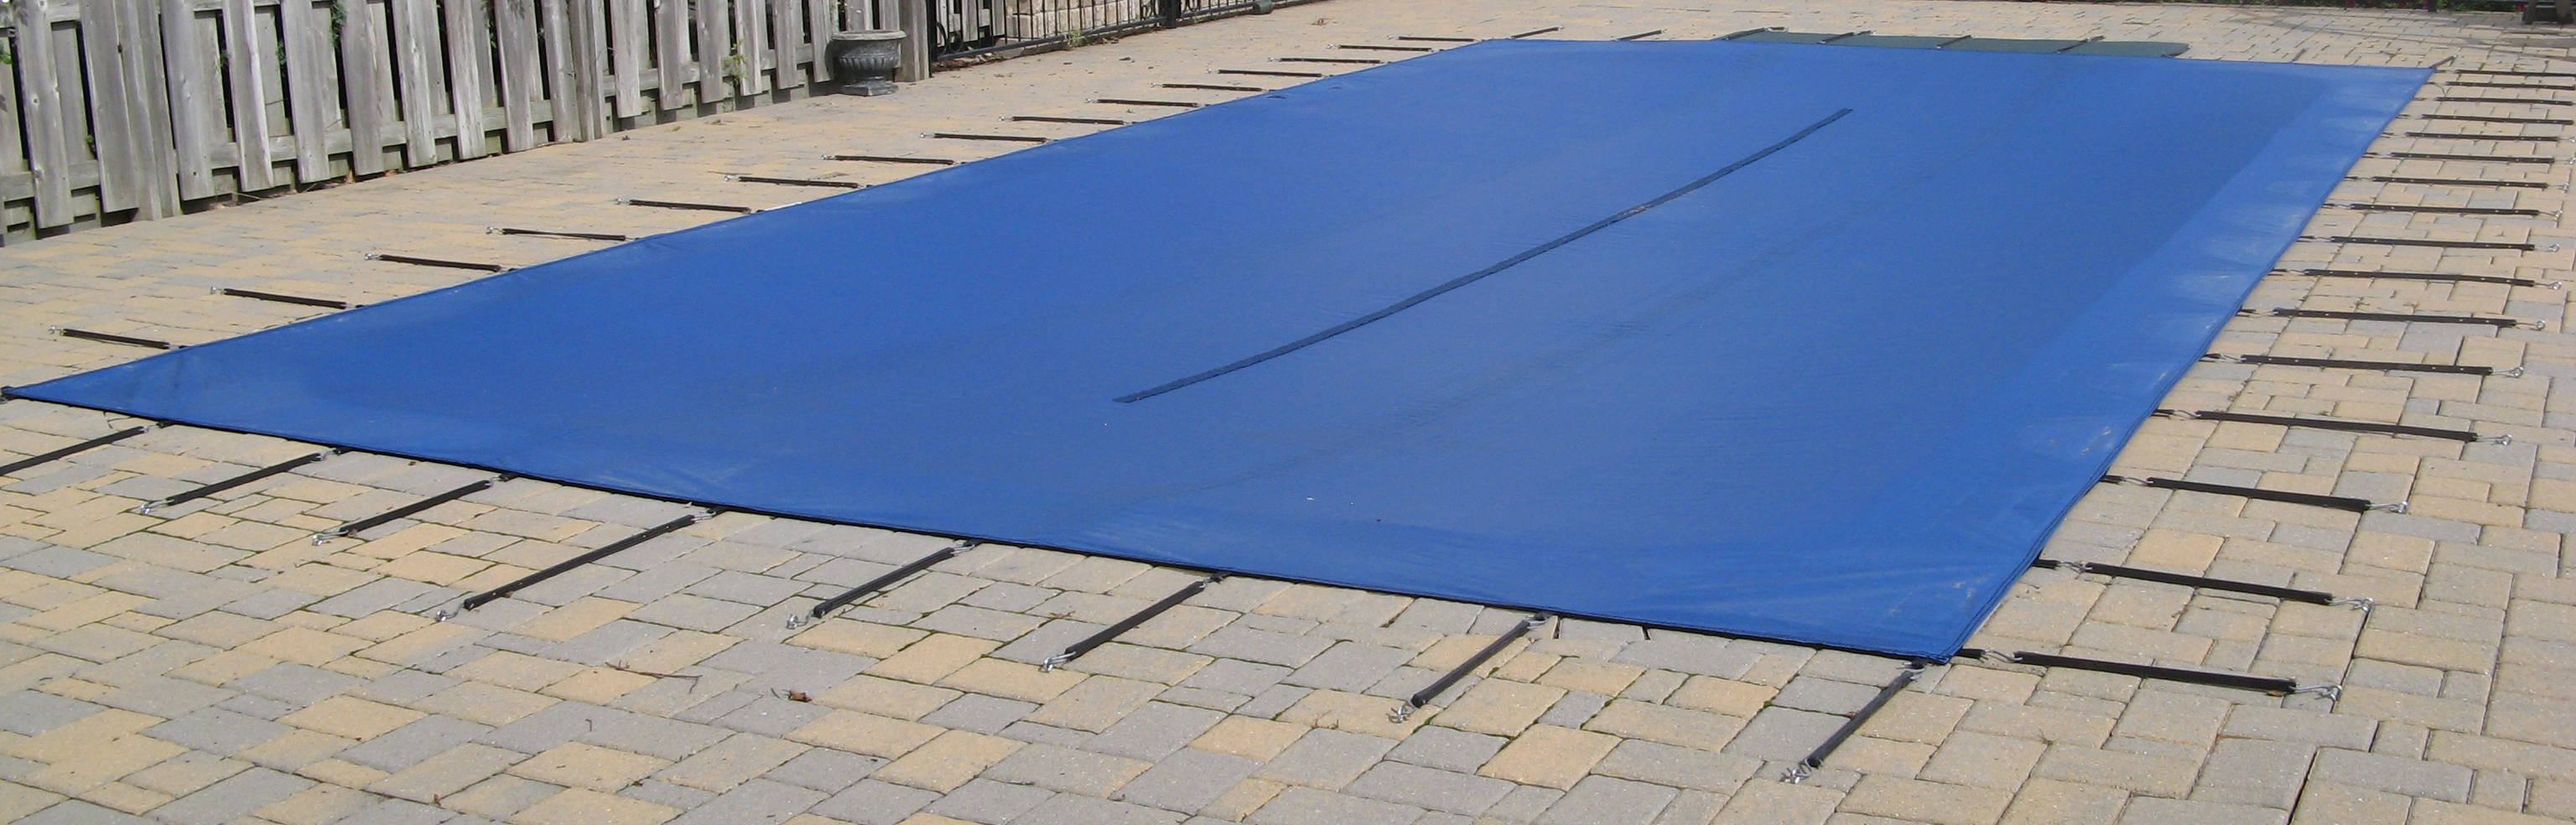 In-Ground Eliminator Winter Cover